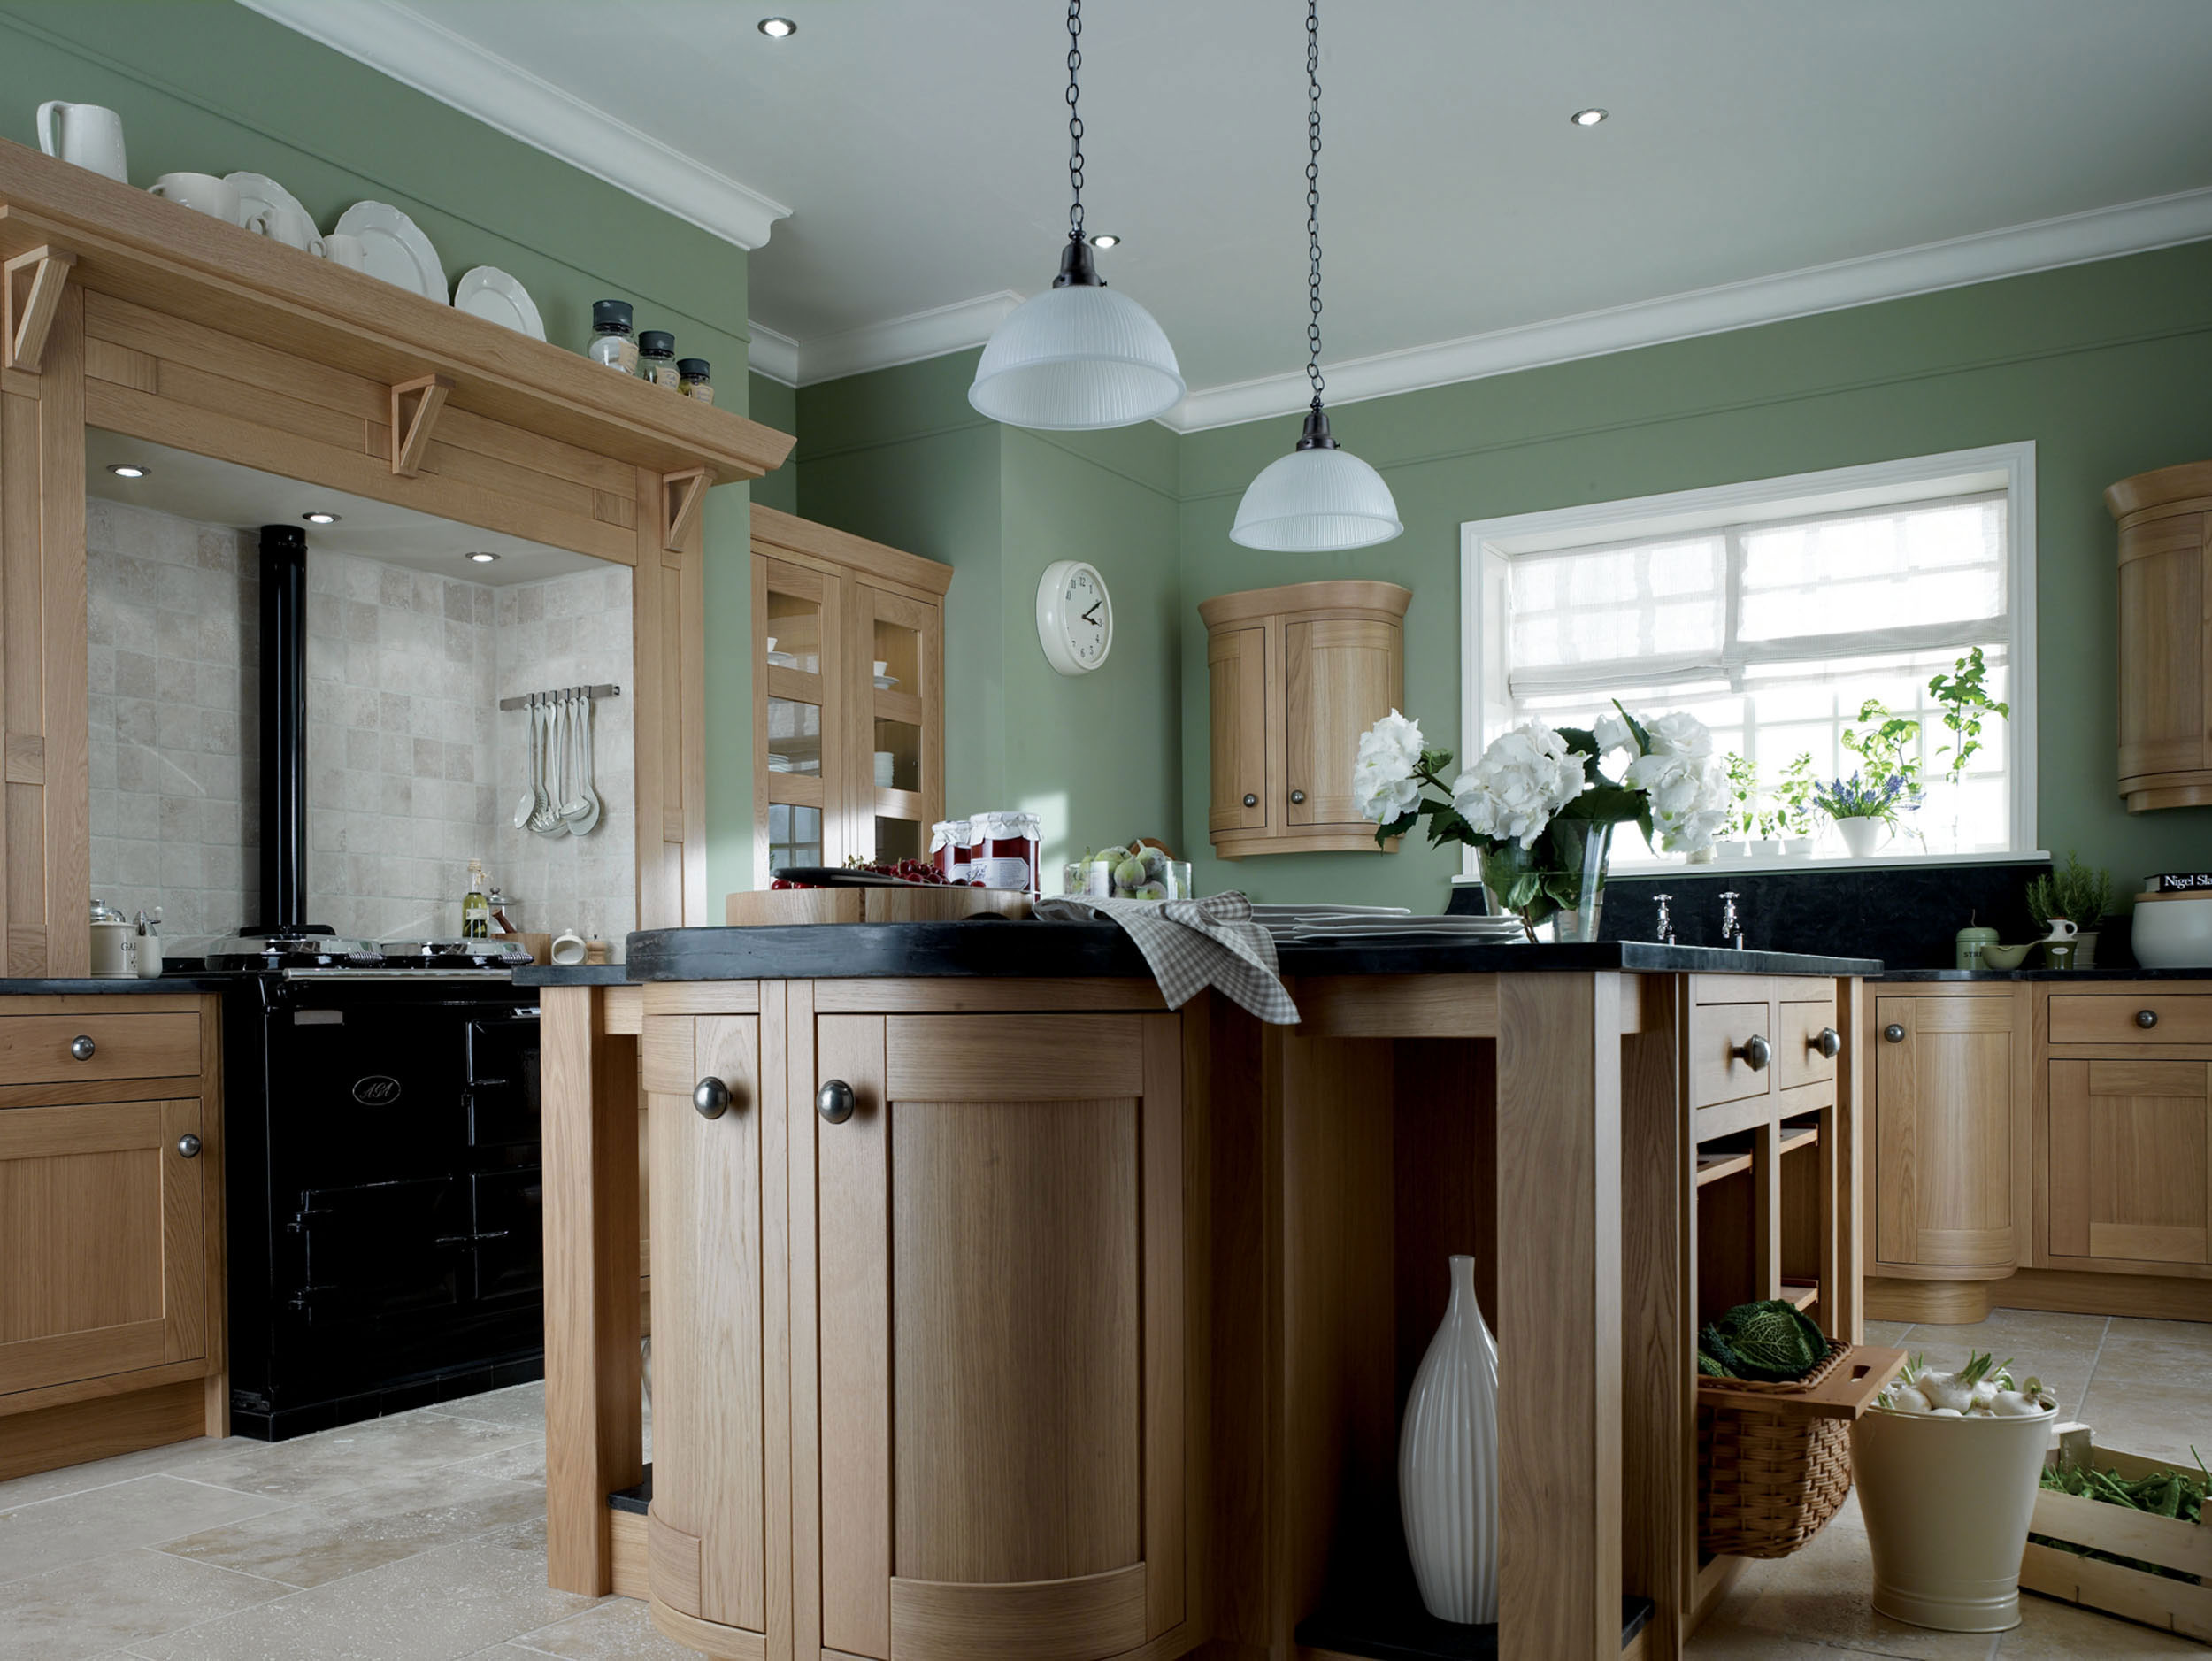 Dark Green Painting Kitchen Countertops Ideas (Image 3 of 10)